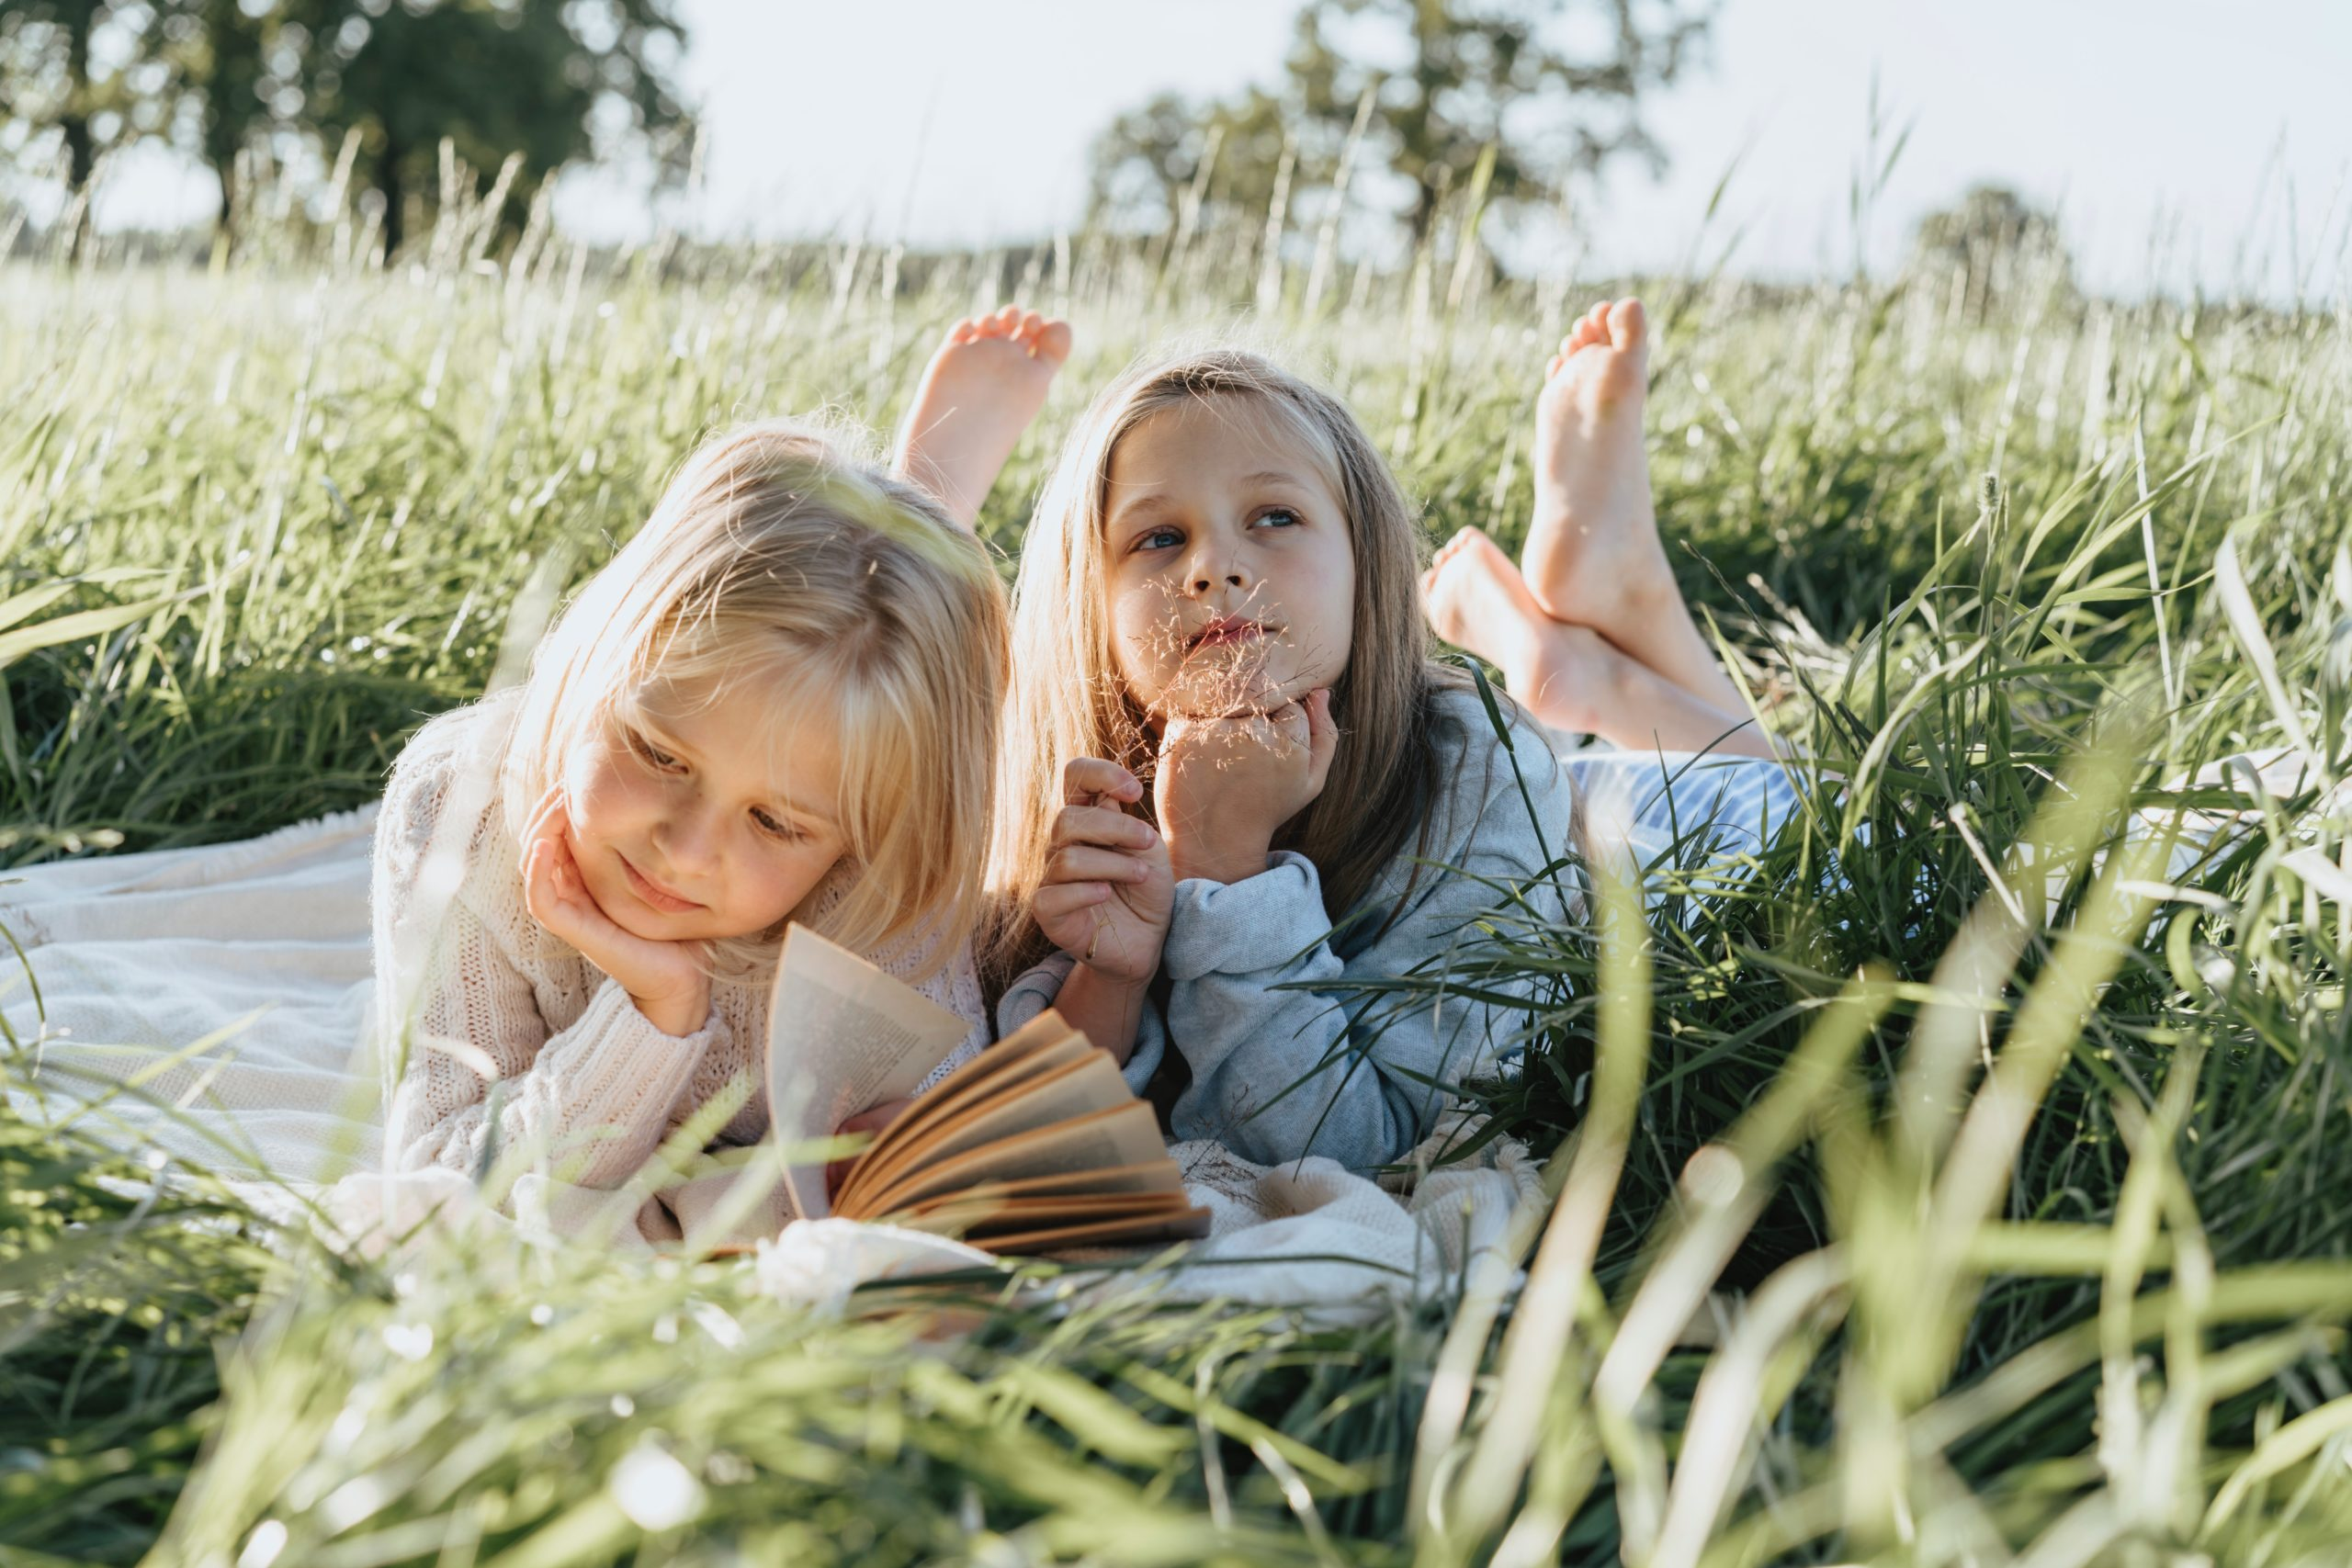 Two young sisters in grass